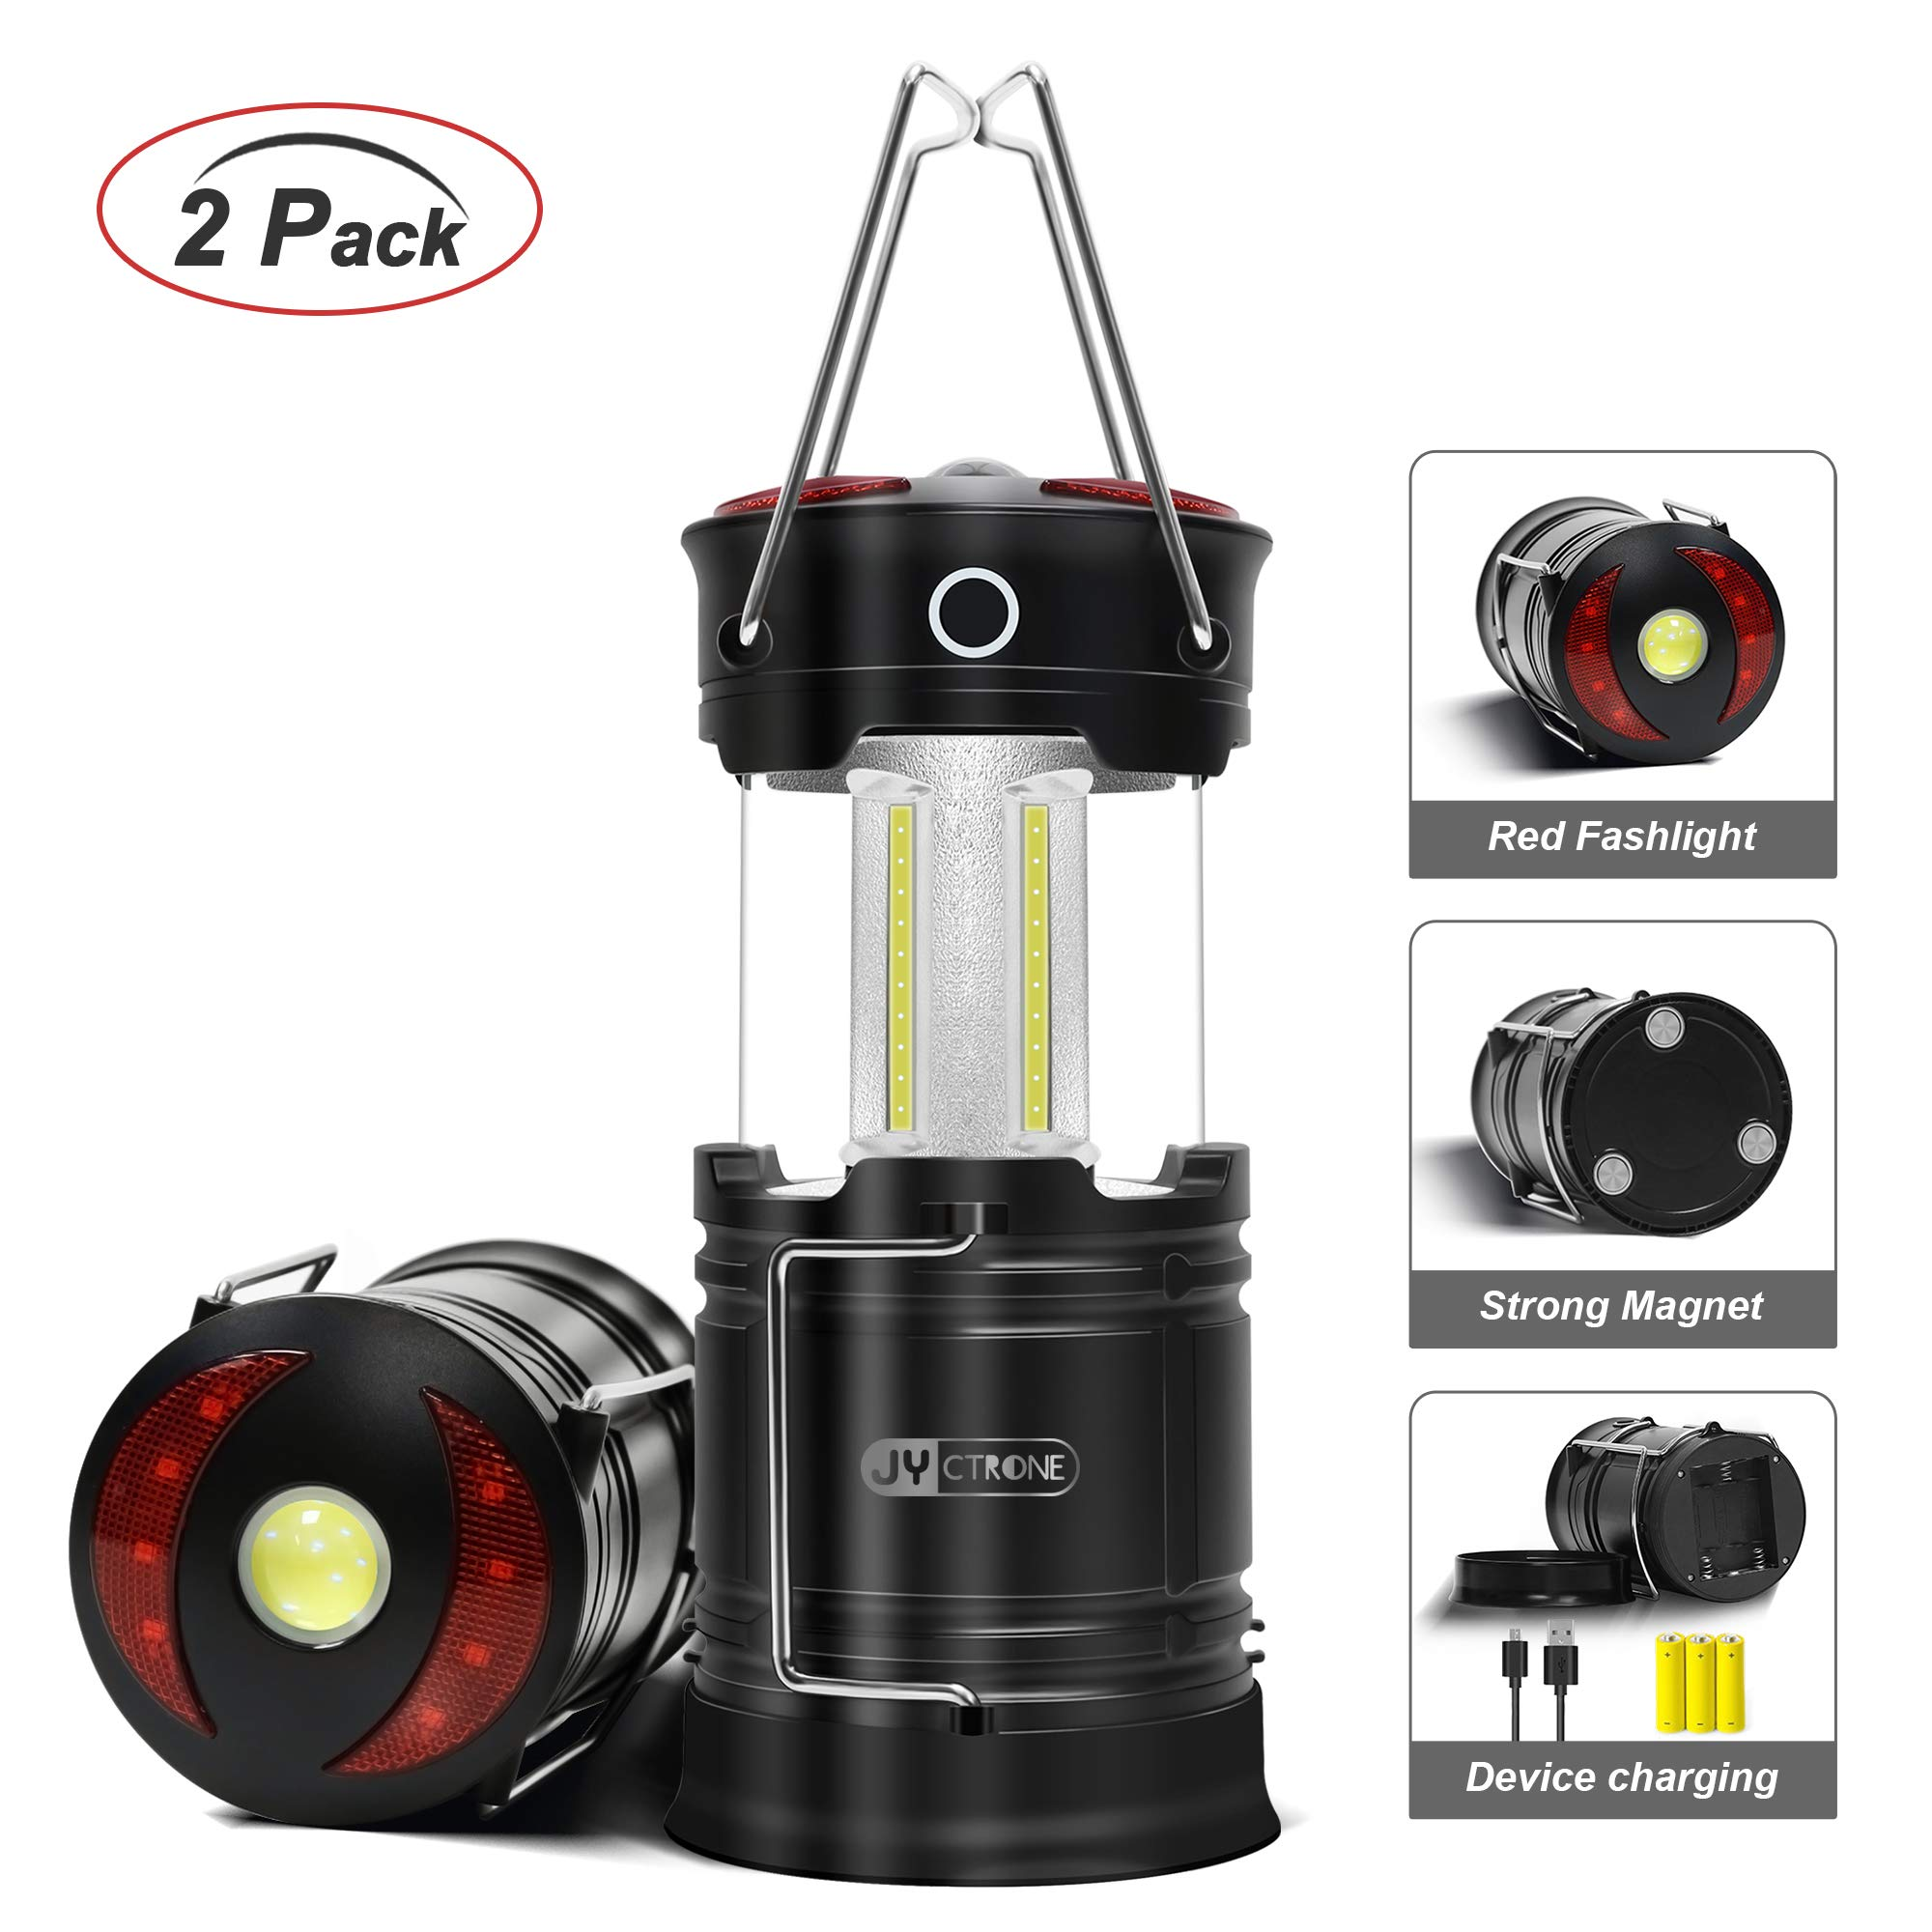 Rechargeable LED Camping Lantern, JYctrone 2019 Newest Magnetic Lantern with USB Cable, Portable Waterproof COB Tent Light 4-In-1 Flashlight Best for Emergency, Hurricane, Power Outage - 2 pack by JYctrone